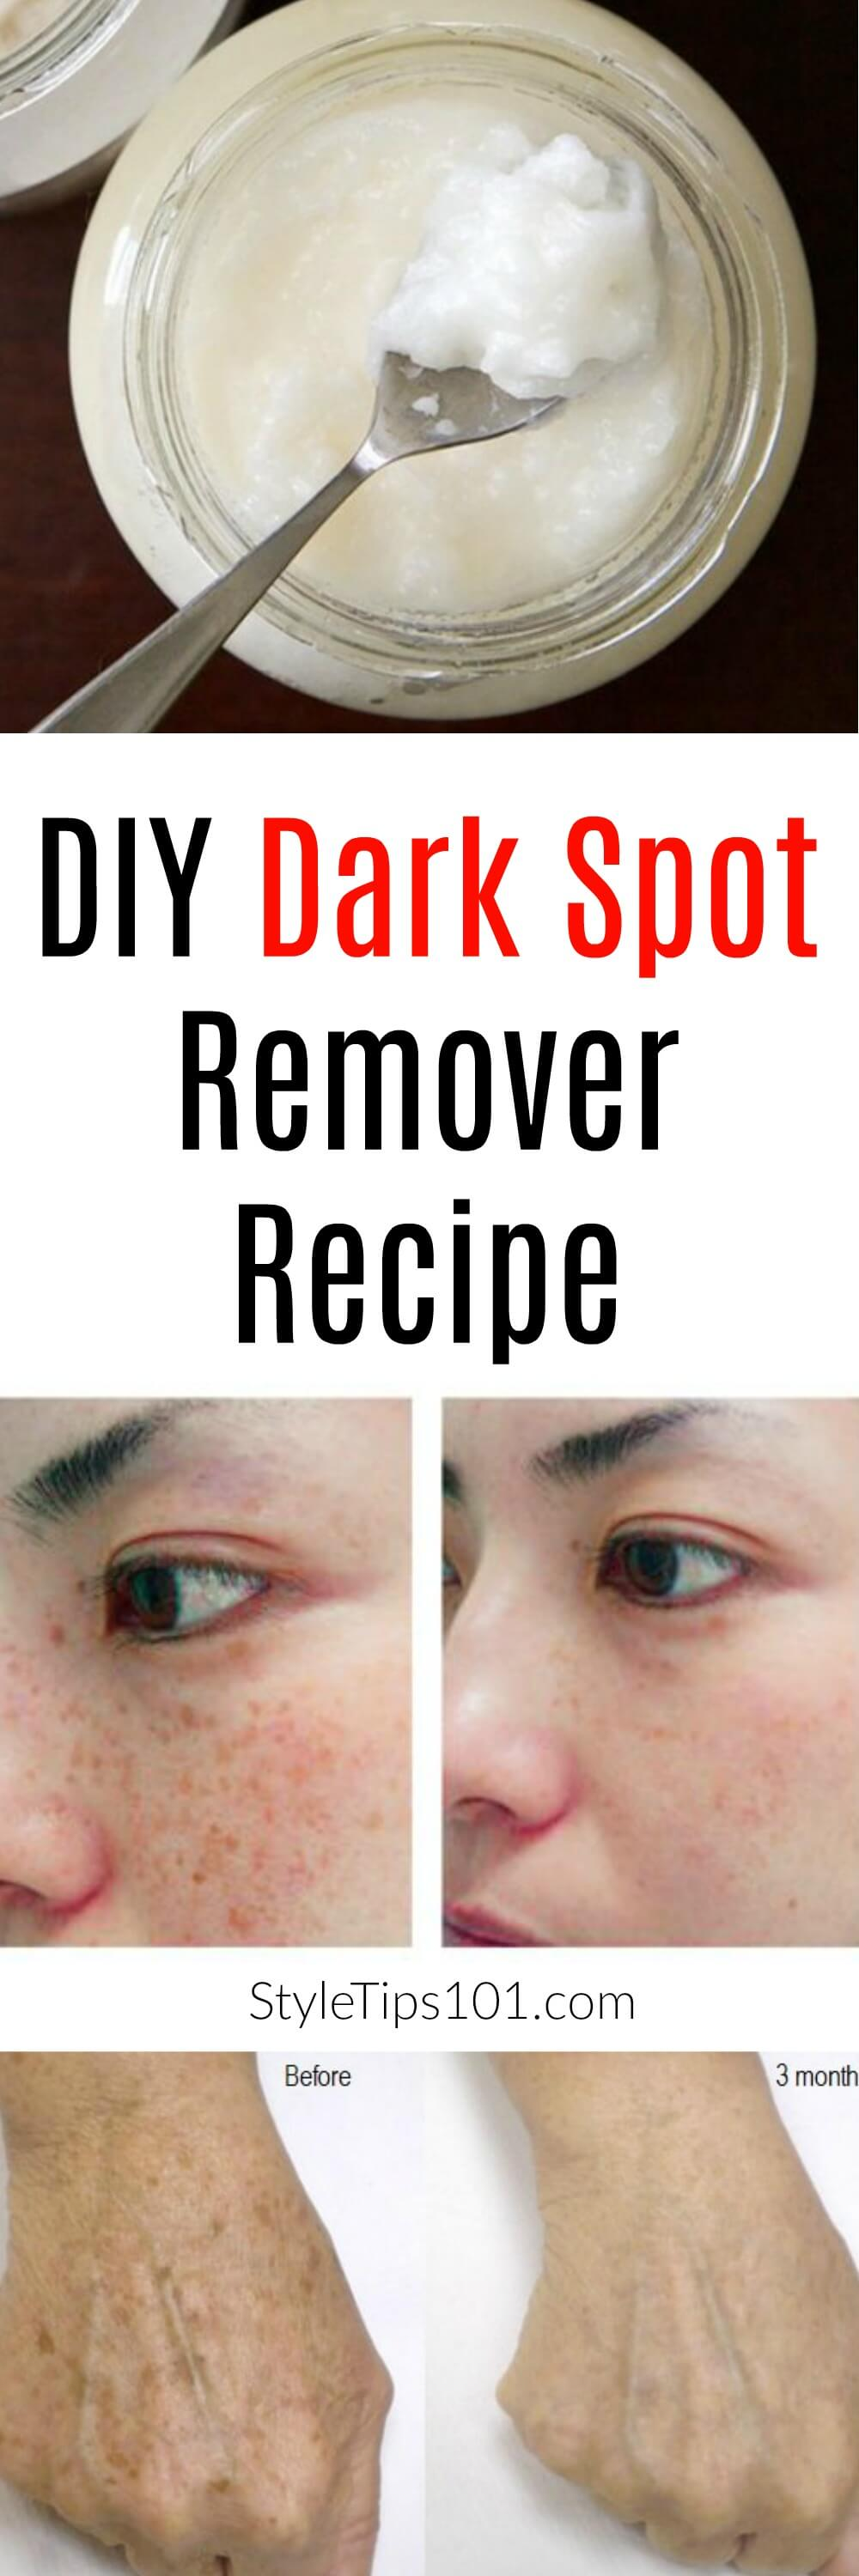 This DIY dark spot remover gel is an amazing alternative to commercial products because it's completely natural and it works just as well!